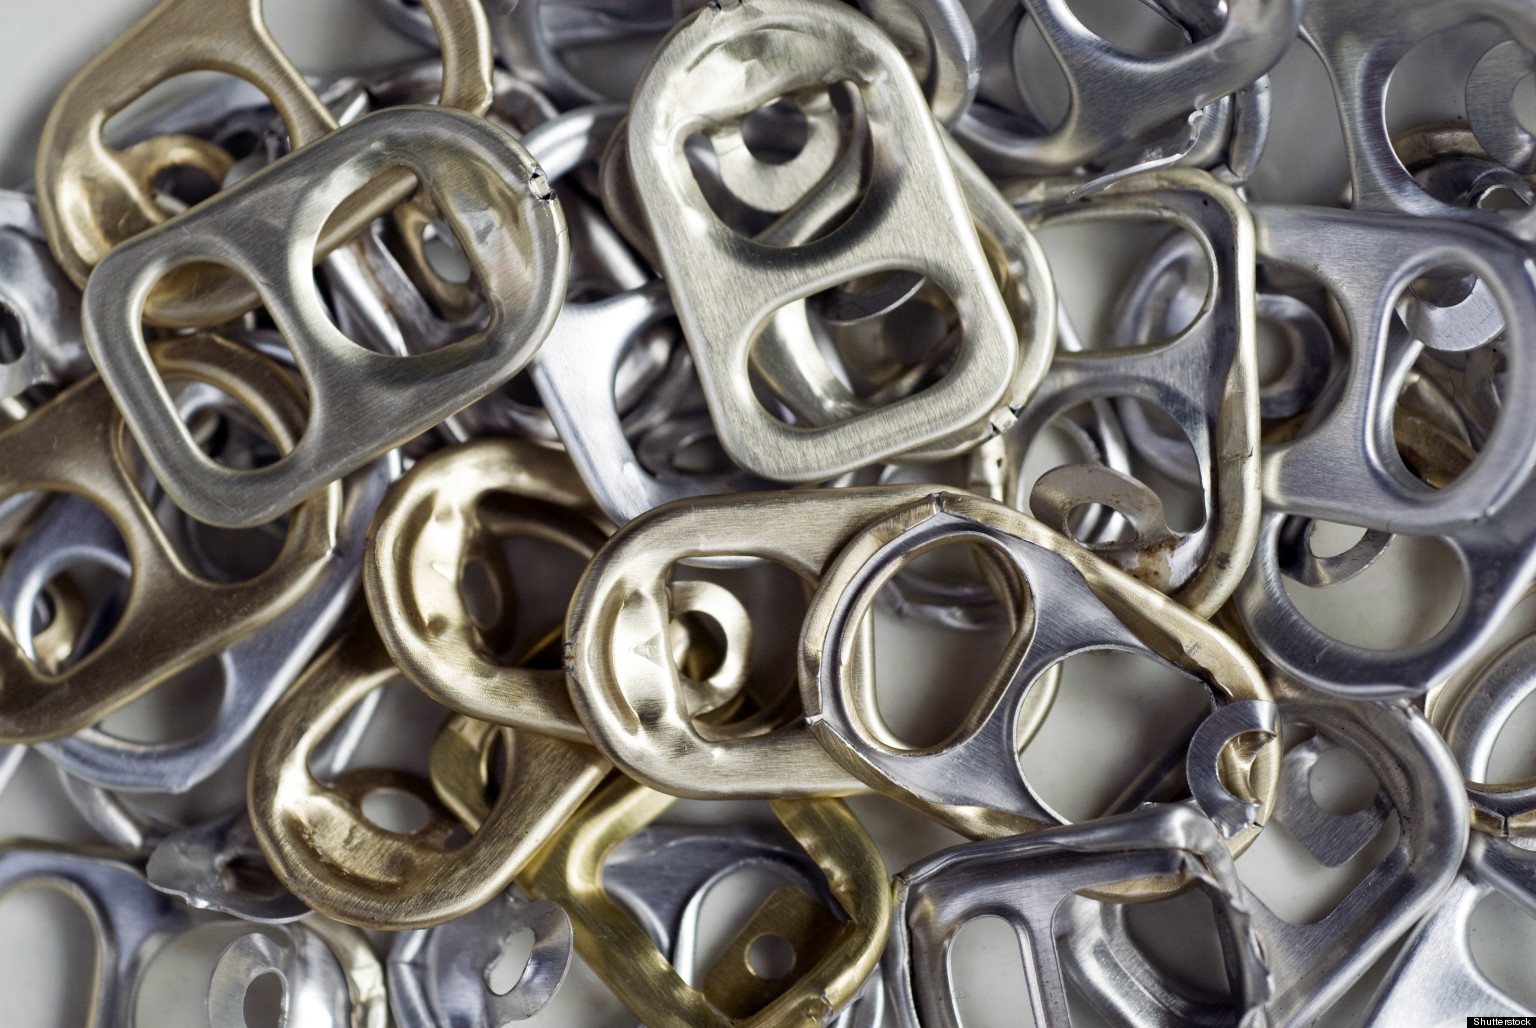 Recyclable Materials: How Many Times You Can Reuse Aluminum, Paper ...